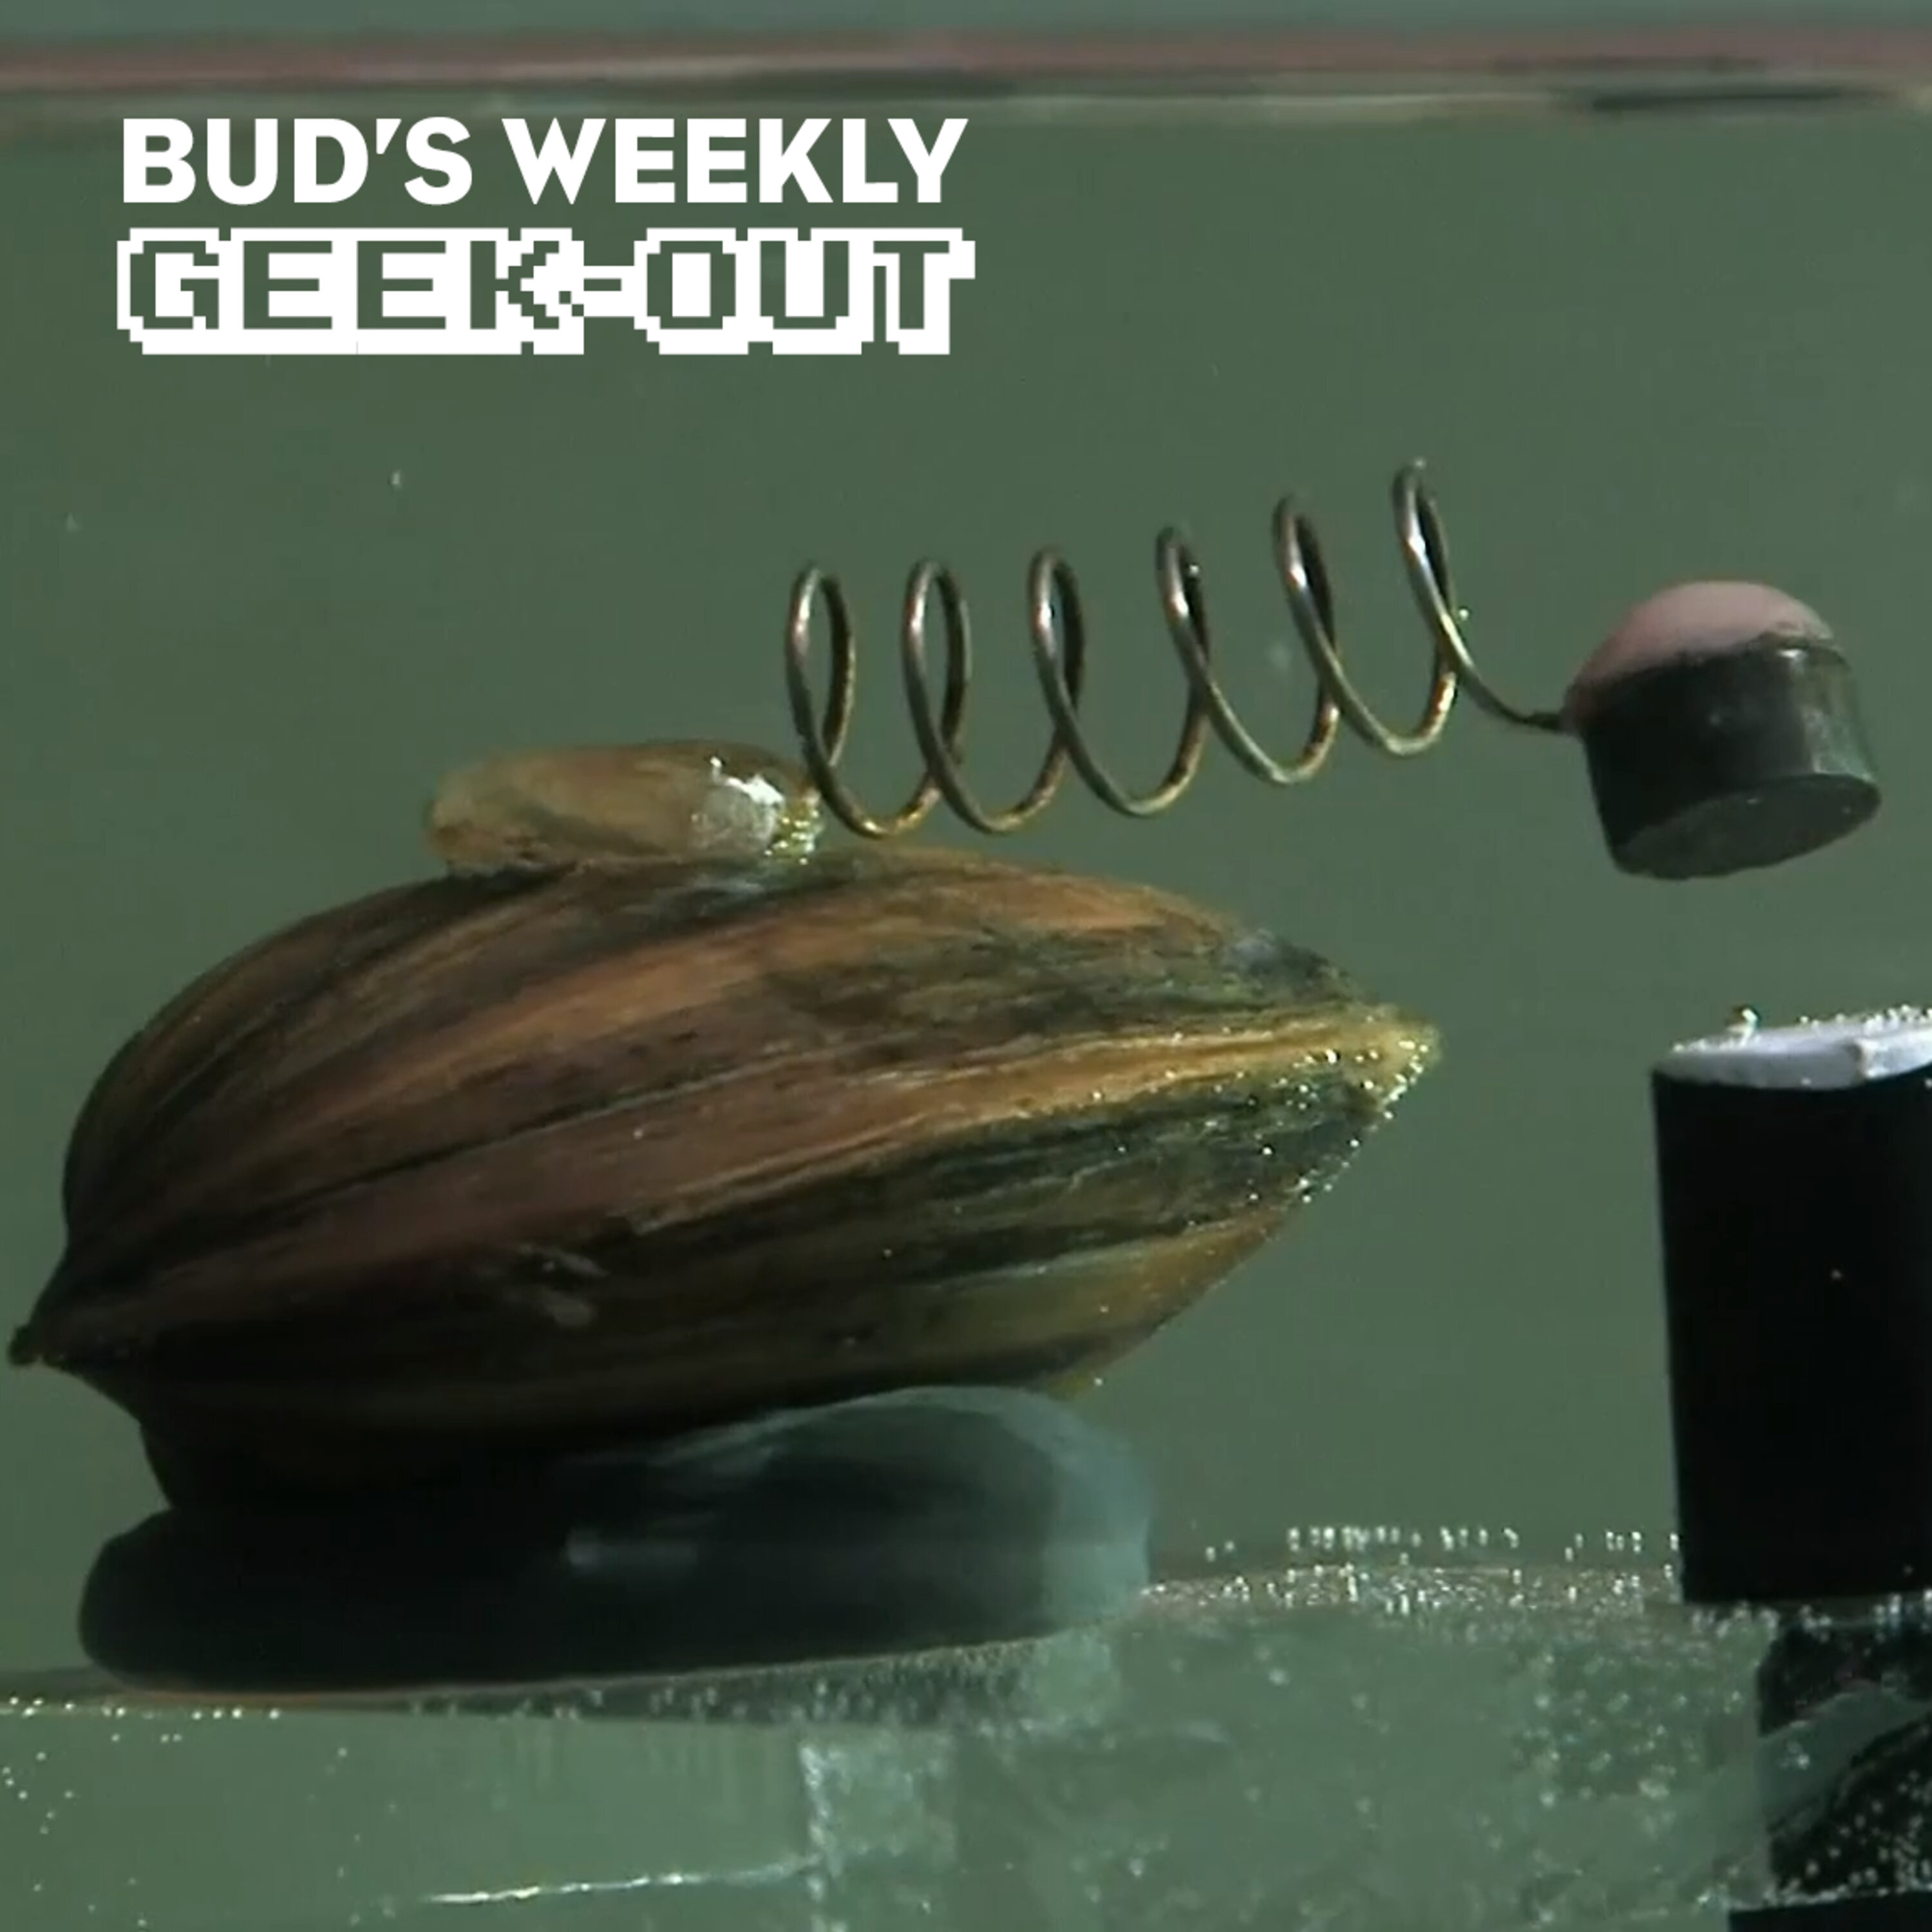 Bud's Weekly Geek-out! 20210609 - pollution-detecting clams